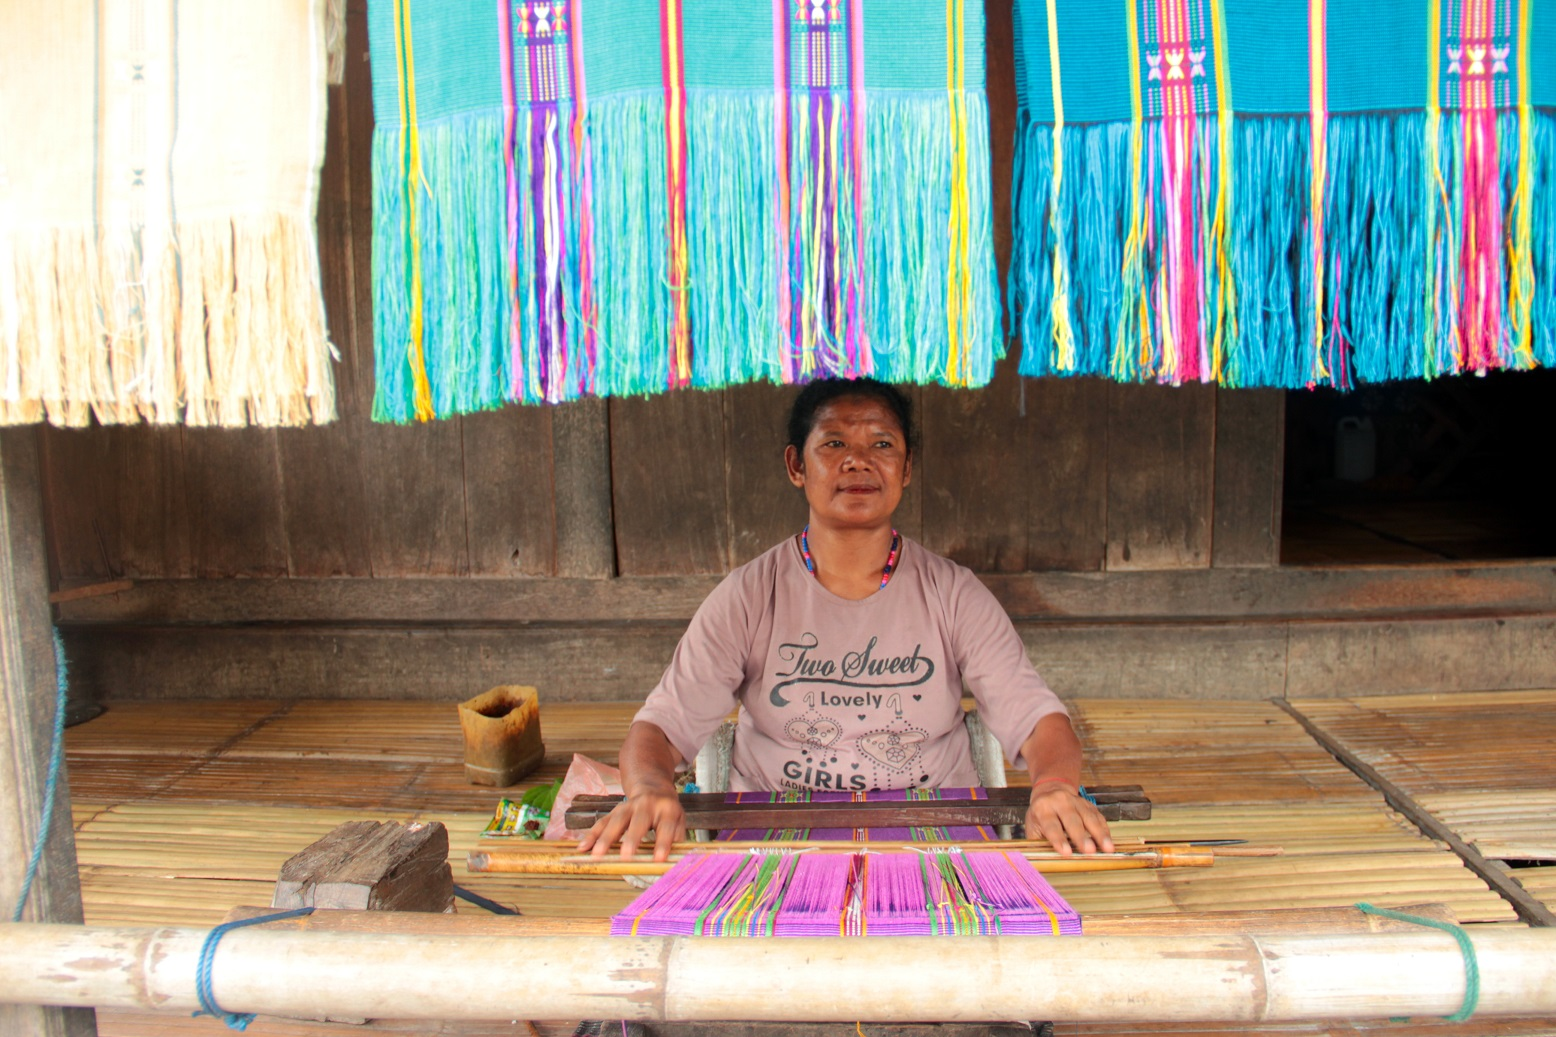 Fabric Weaving in flores